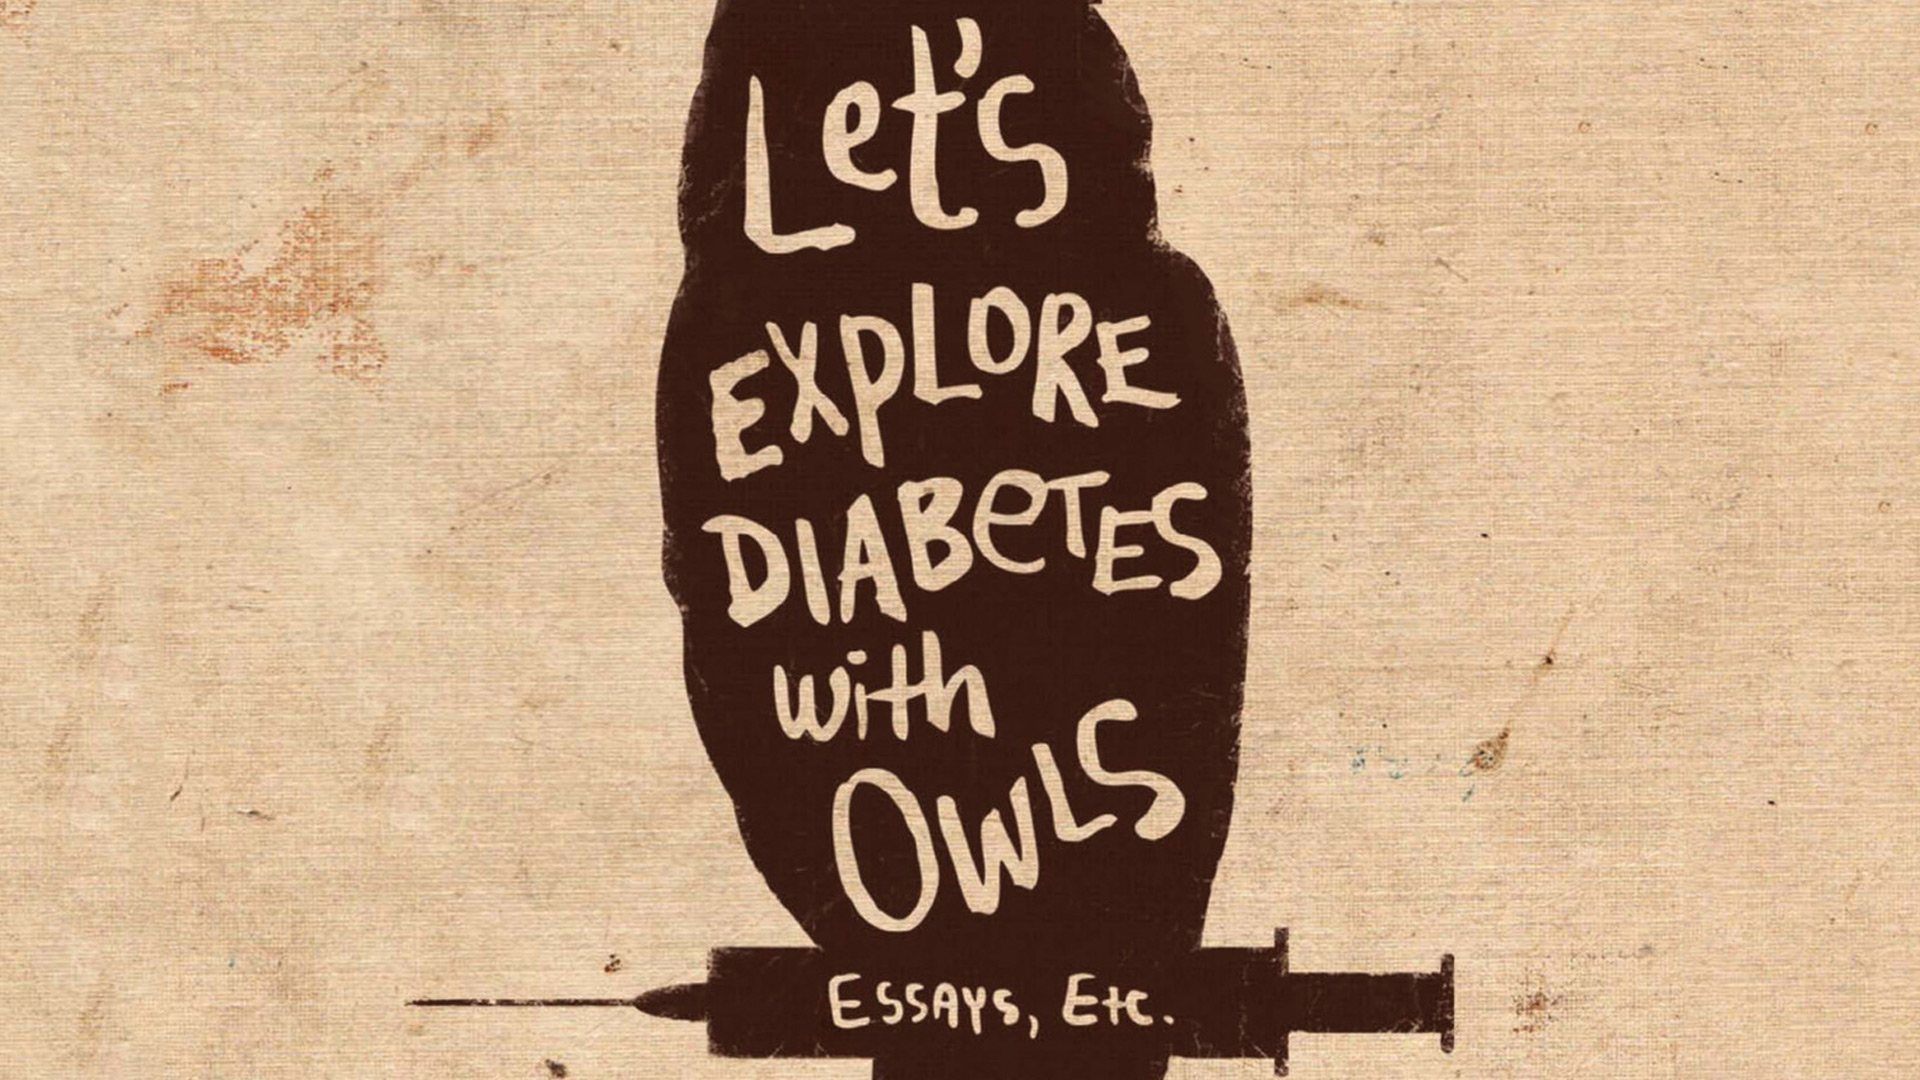 Let's Explore Diabetes with Owls (2013)